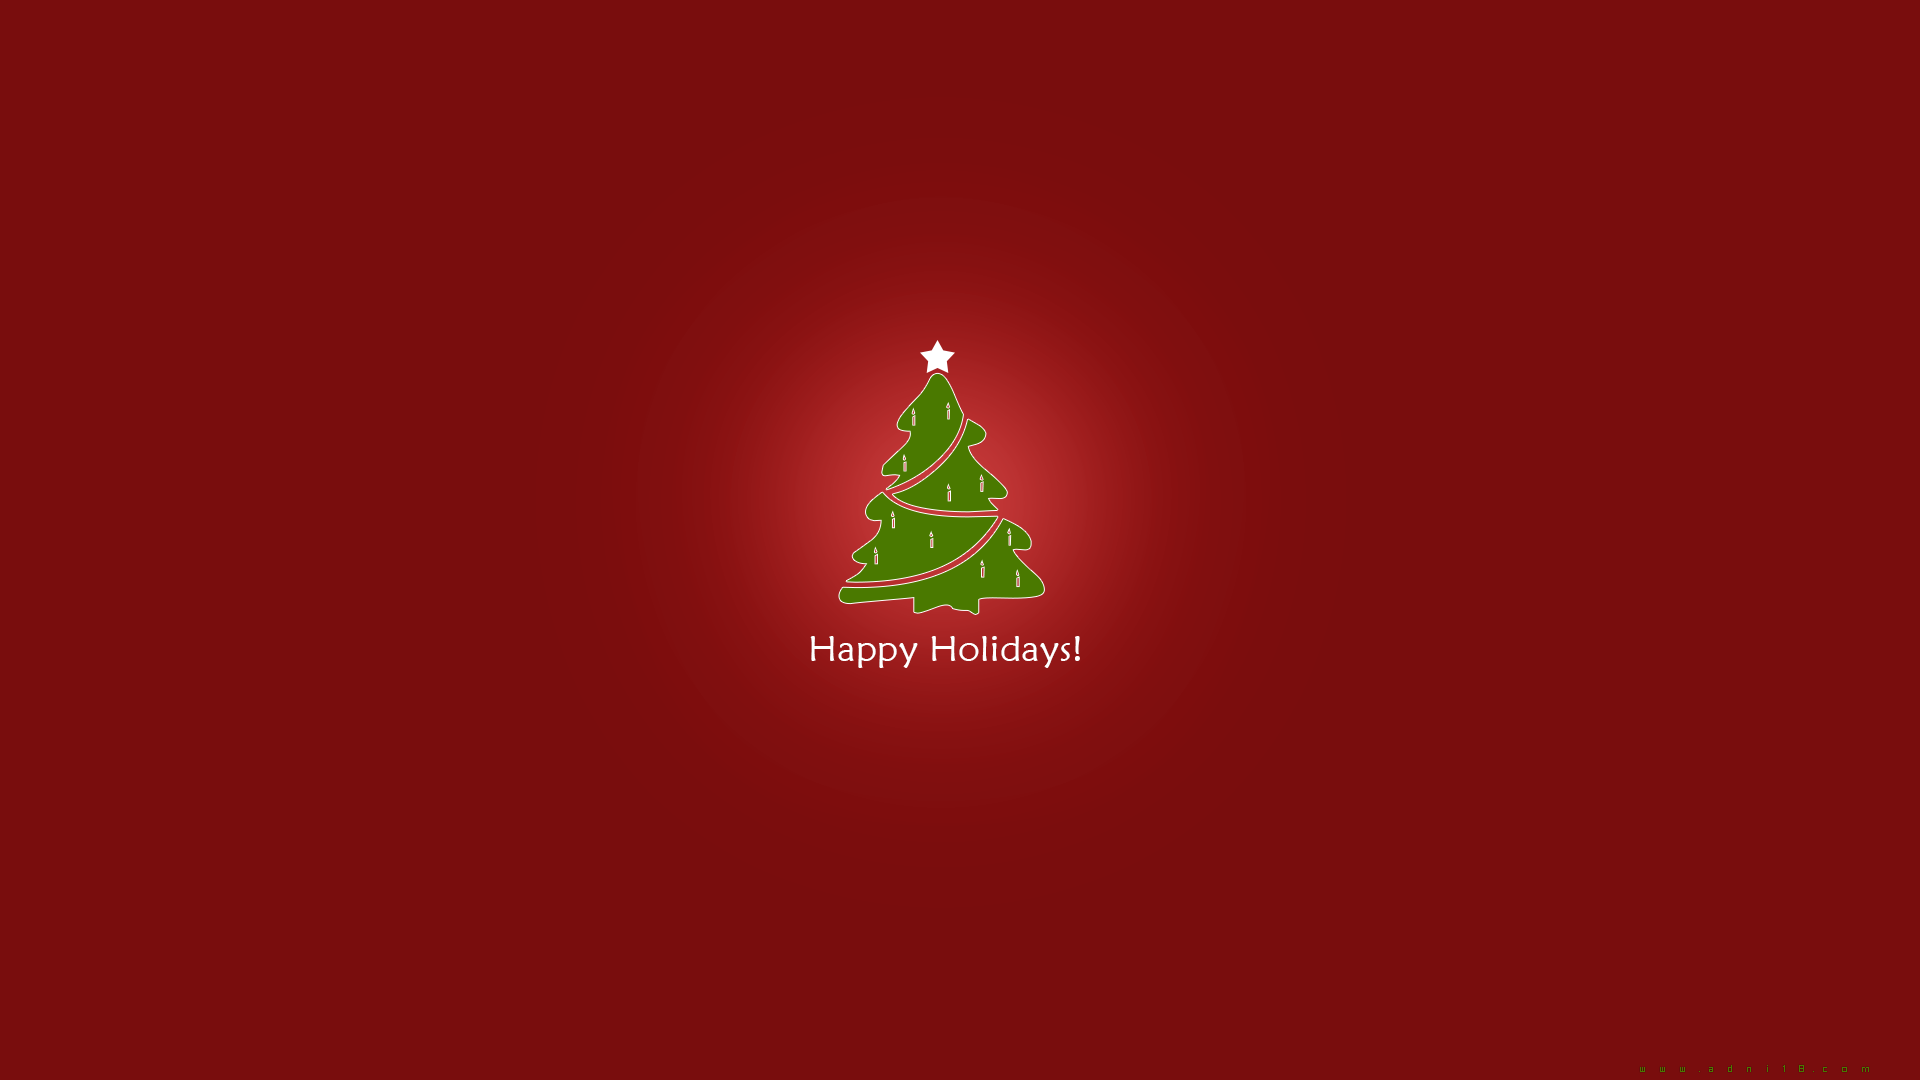 Free High Resolution Christmas Themes Wallpapers And Icons